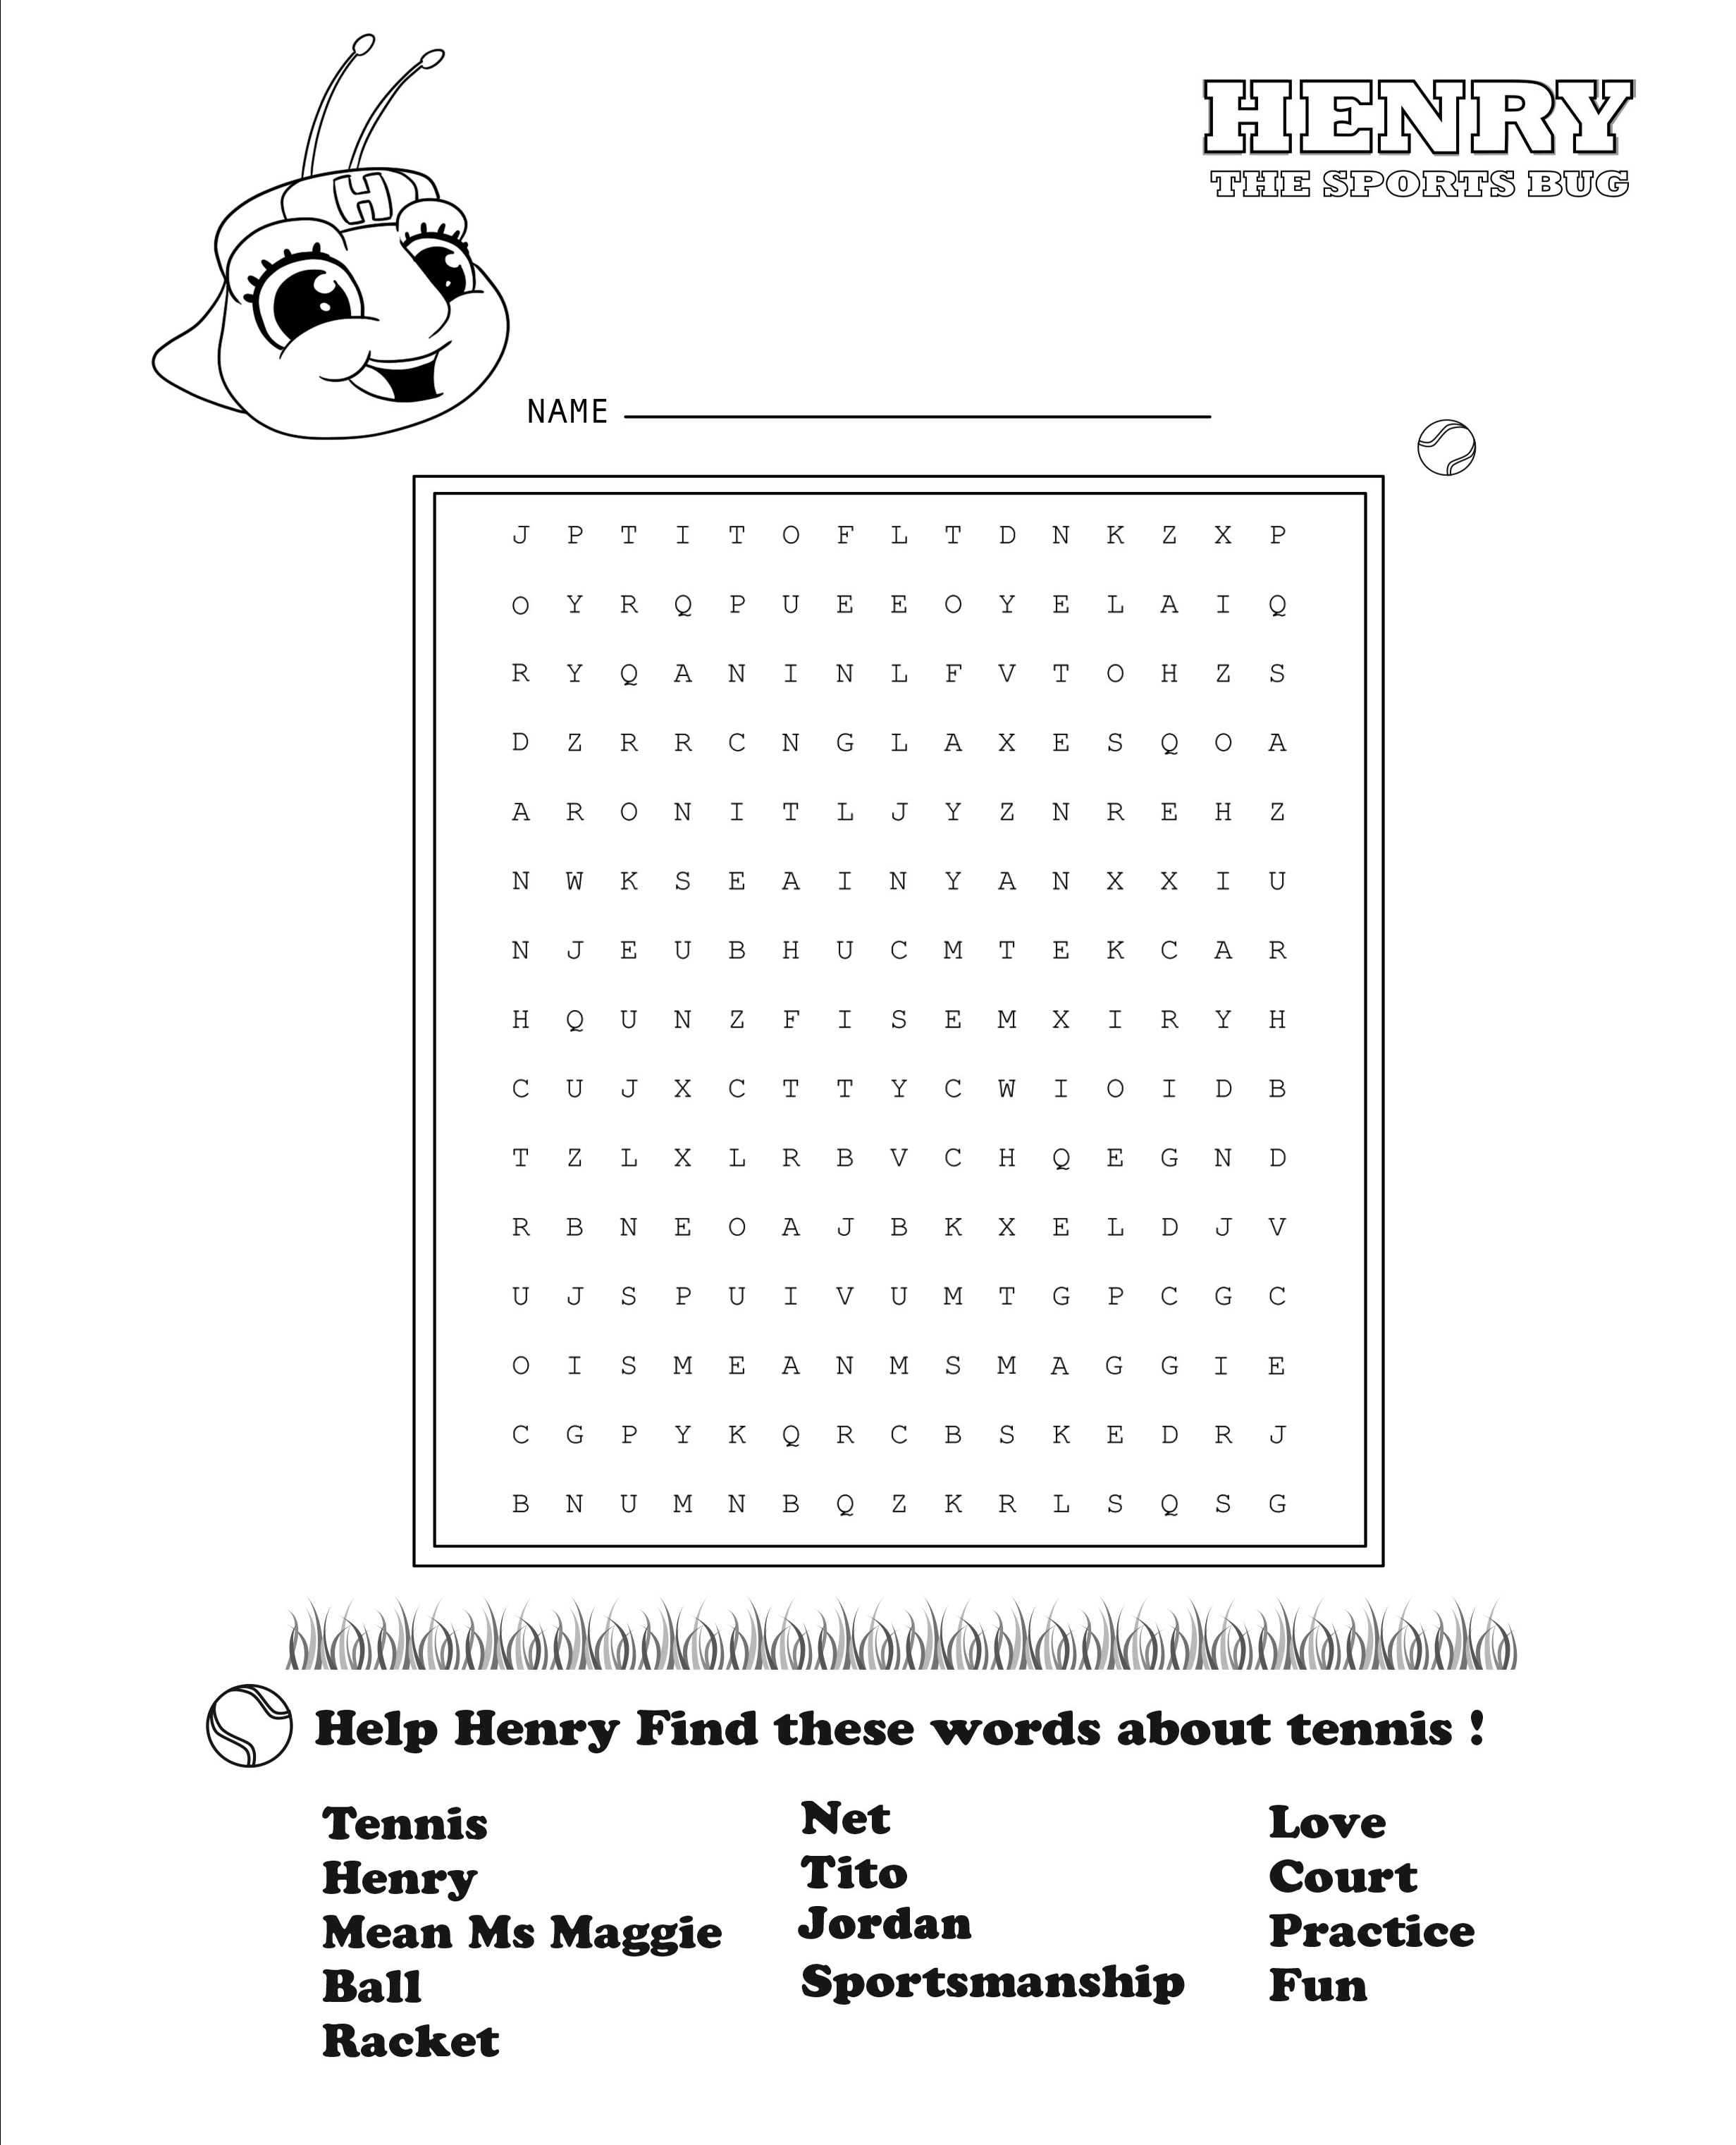 HTSB_Tennis_Word_Search